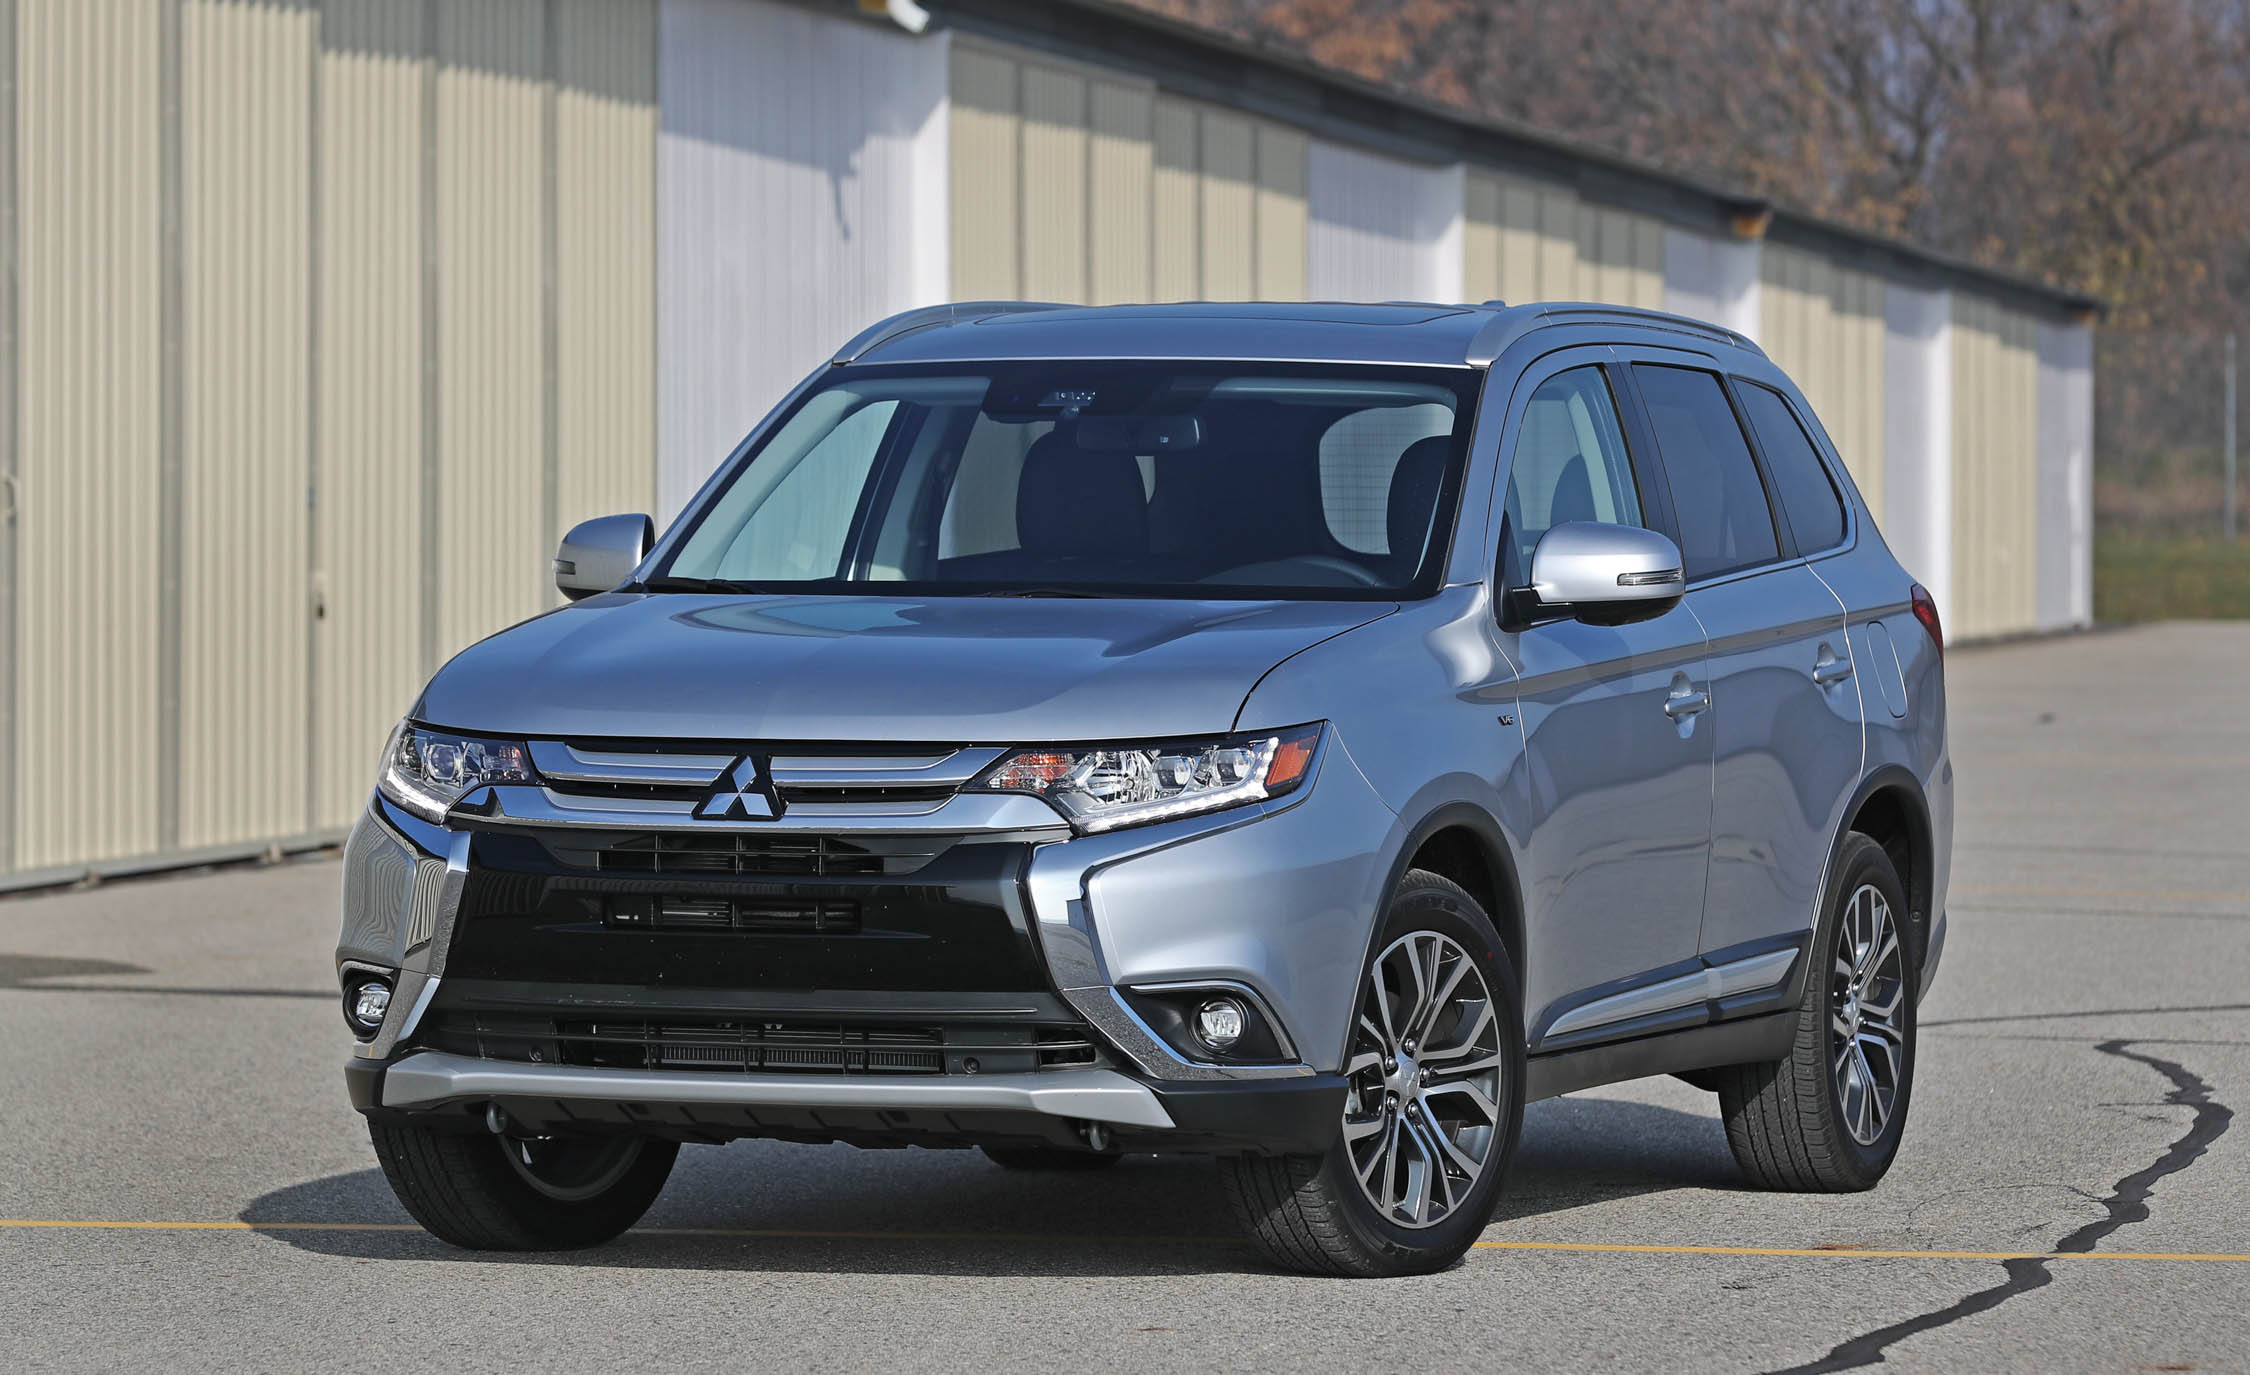 2017 Mitsubishi Outlander Gt Exterior Front (View 34 of 34)